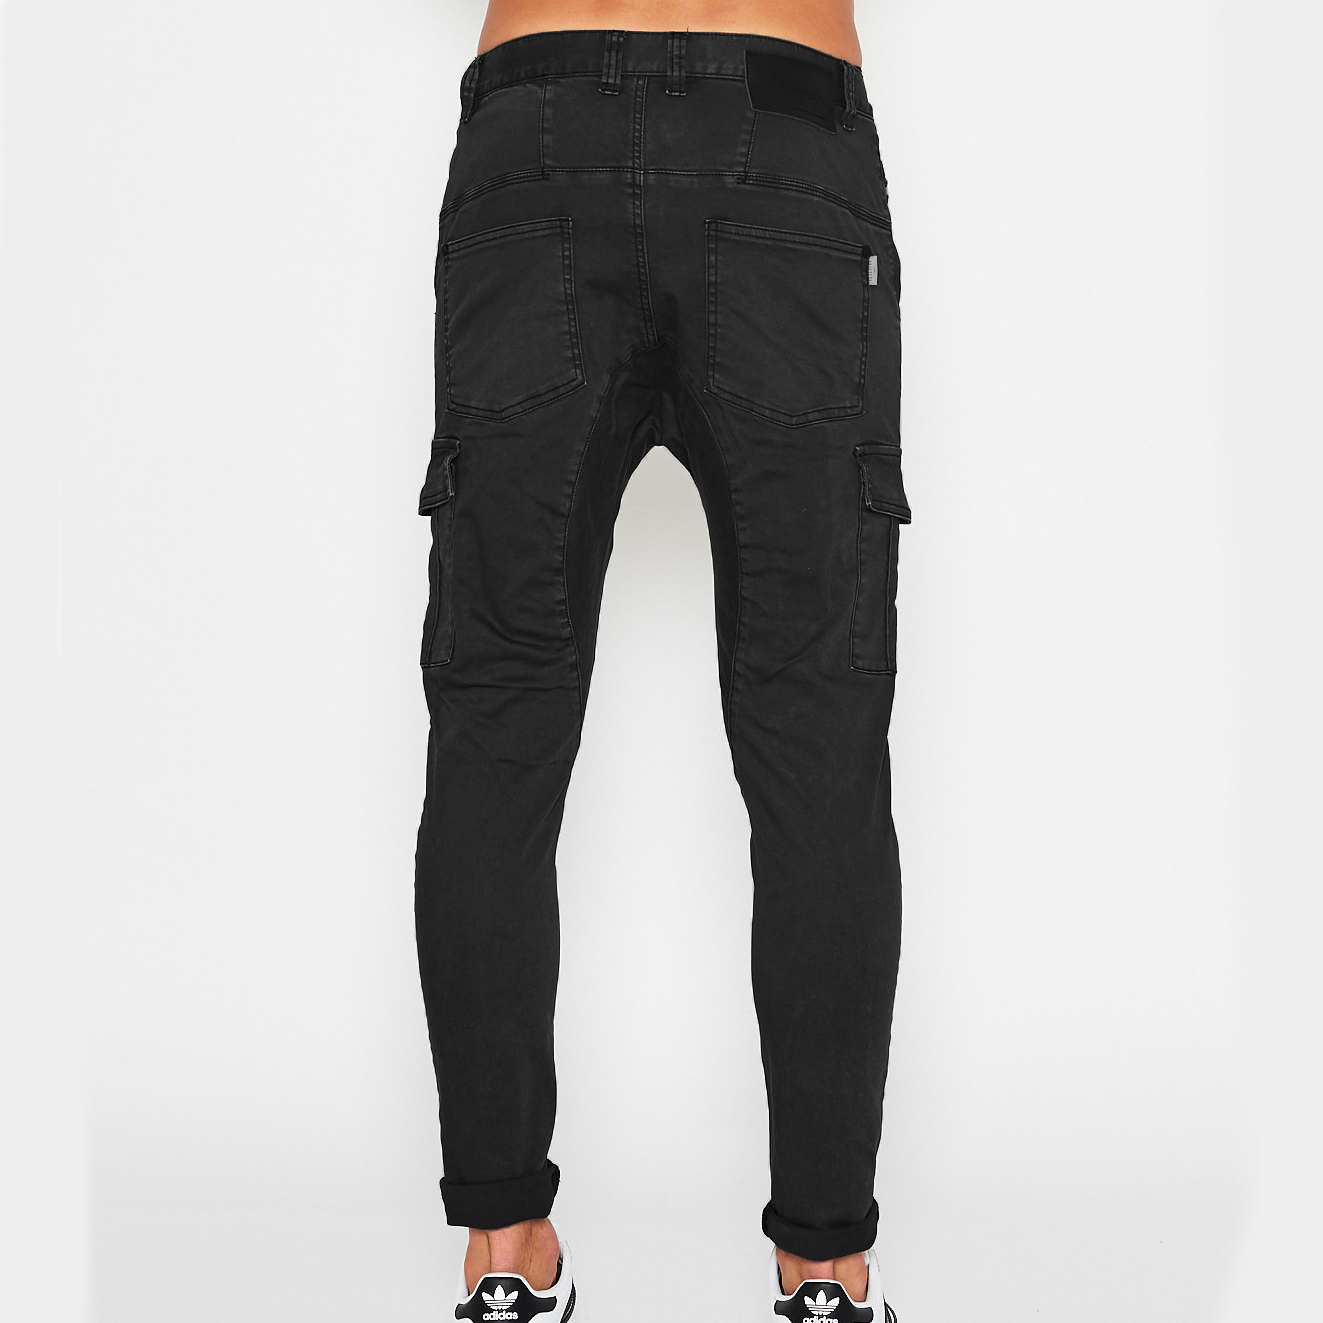 Typhoon pants nxp typhoon pant - washed black DQORWFP